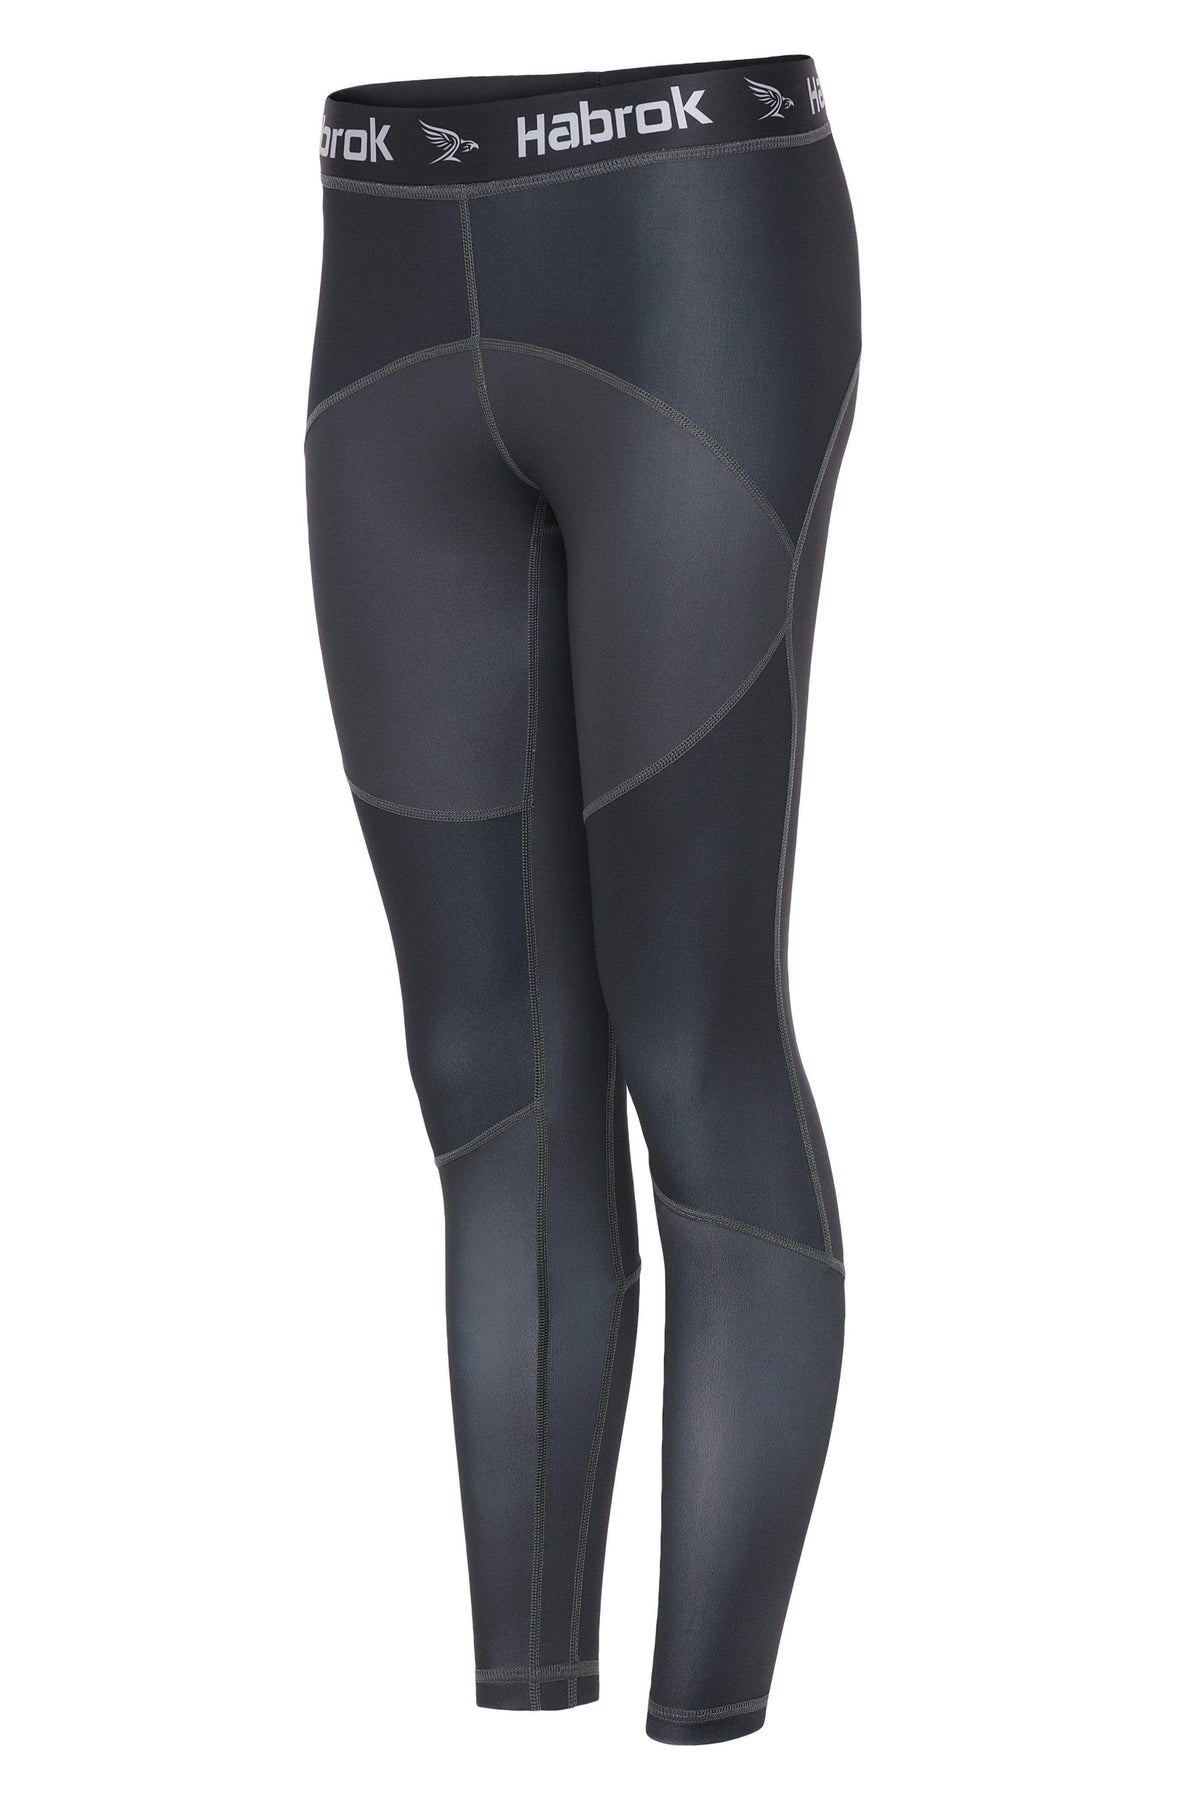 Habrok Spats XS / GREY Pugnator | Compression Spats | Women 681565432620